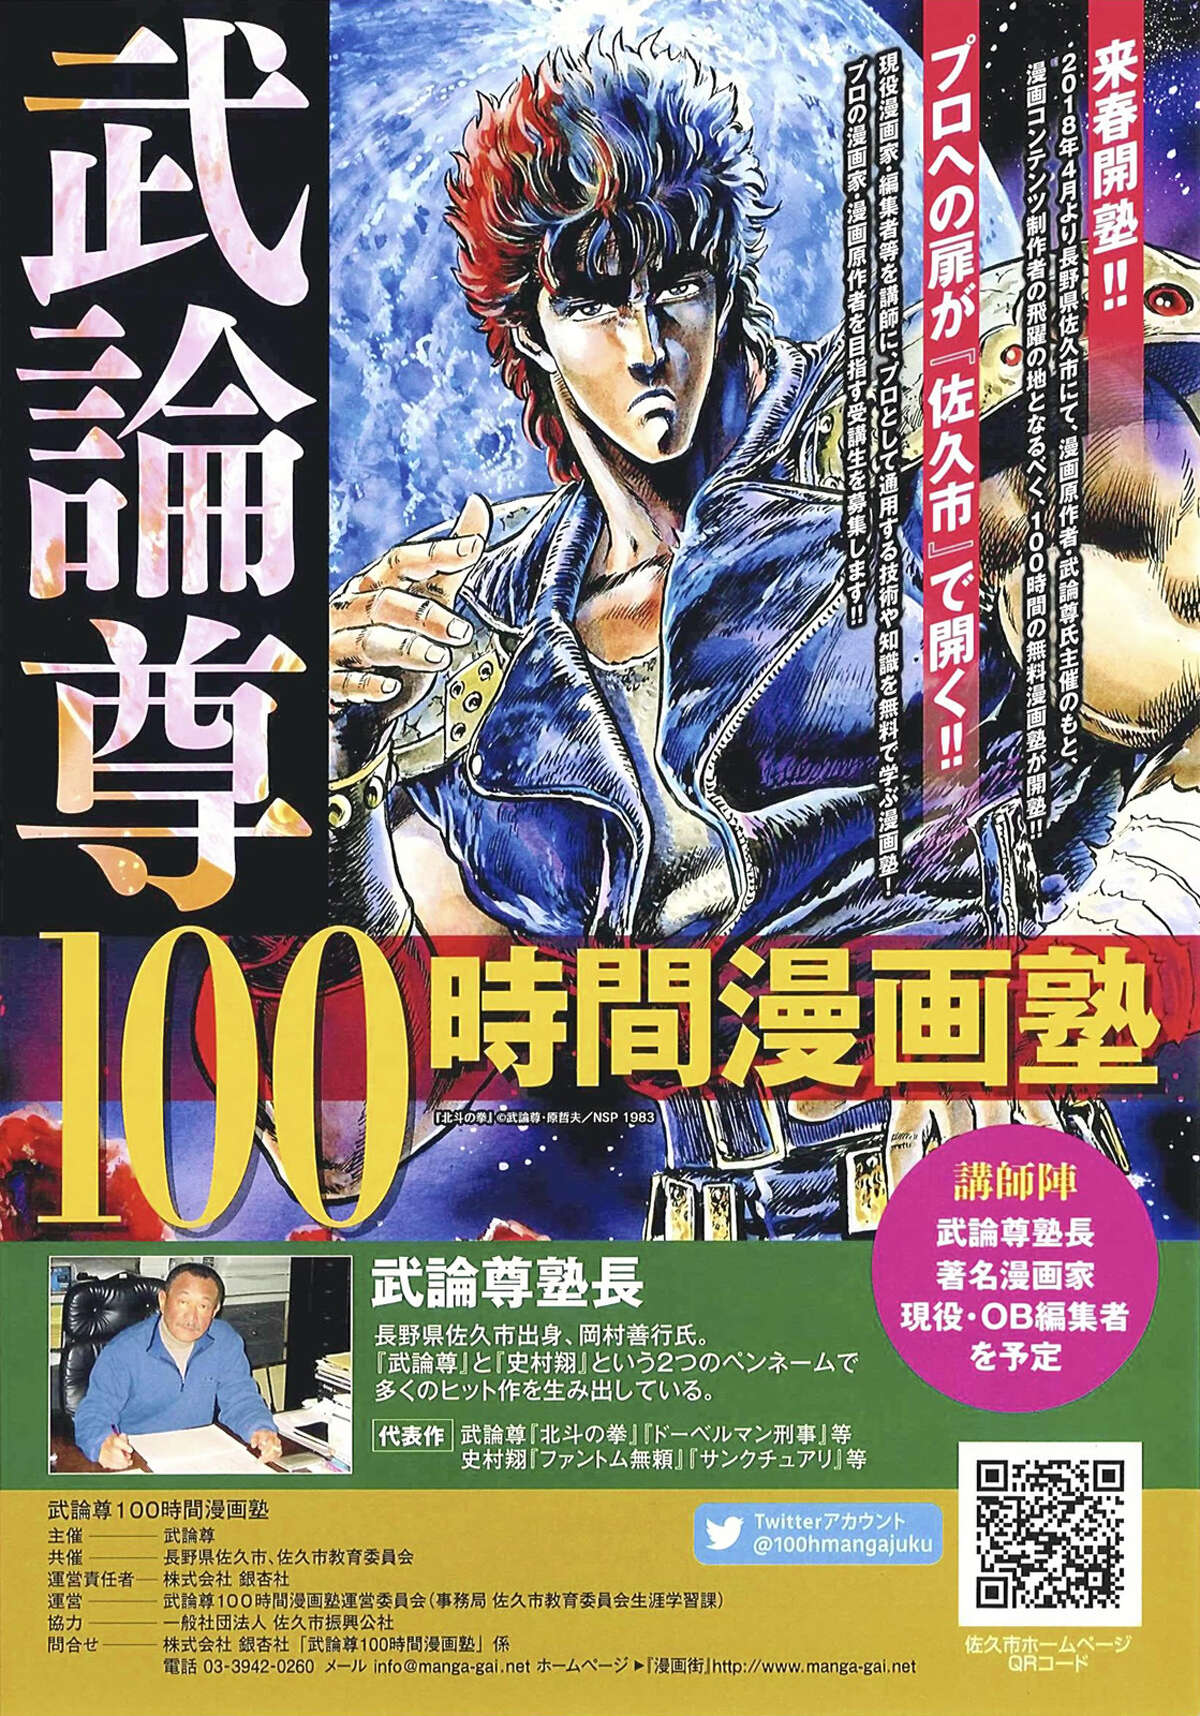 A leaflet announces Buronson's free manga school in April in his home city of Saku, Japan.